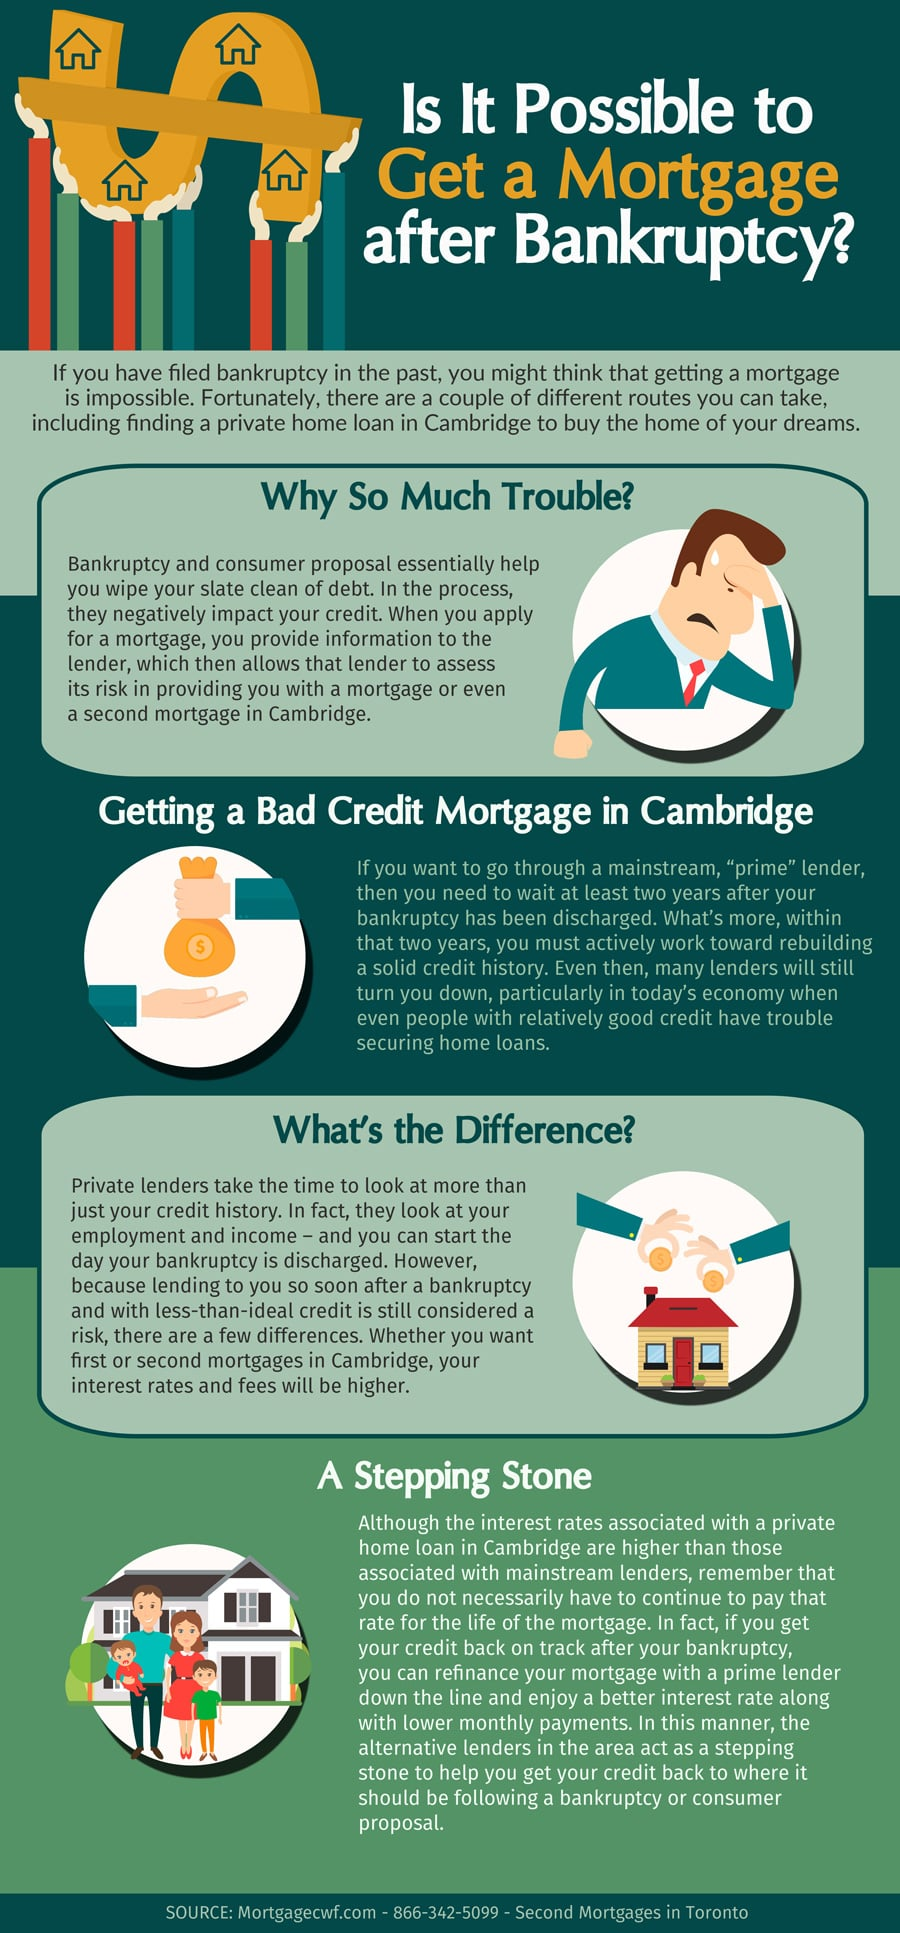 Is It Possible to Get a Mortgage after Bankruptcy - Infographic